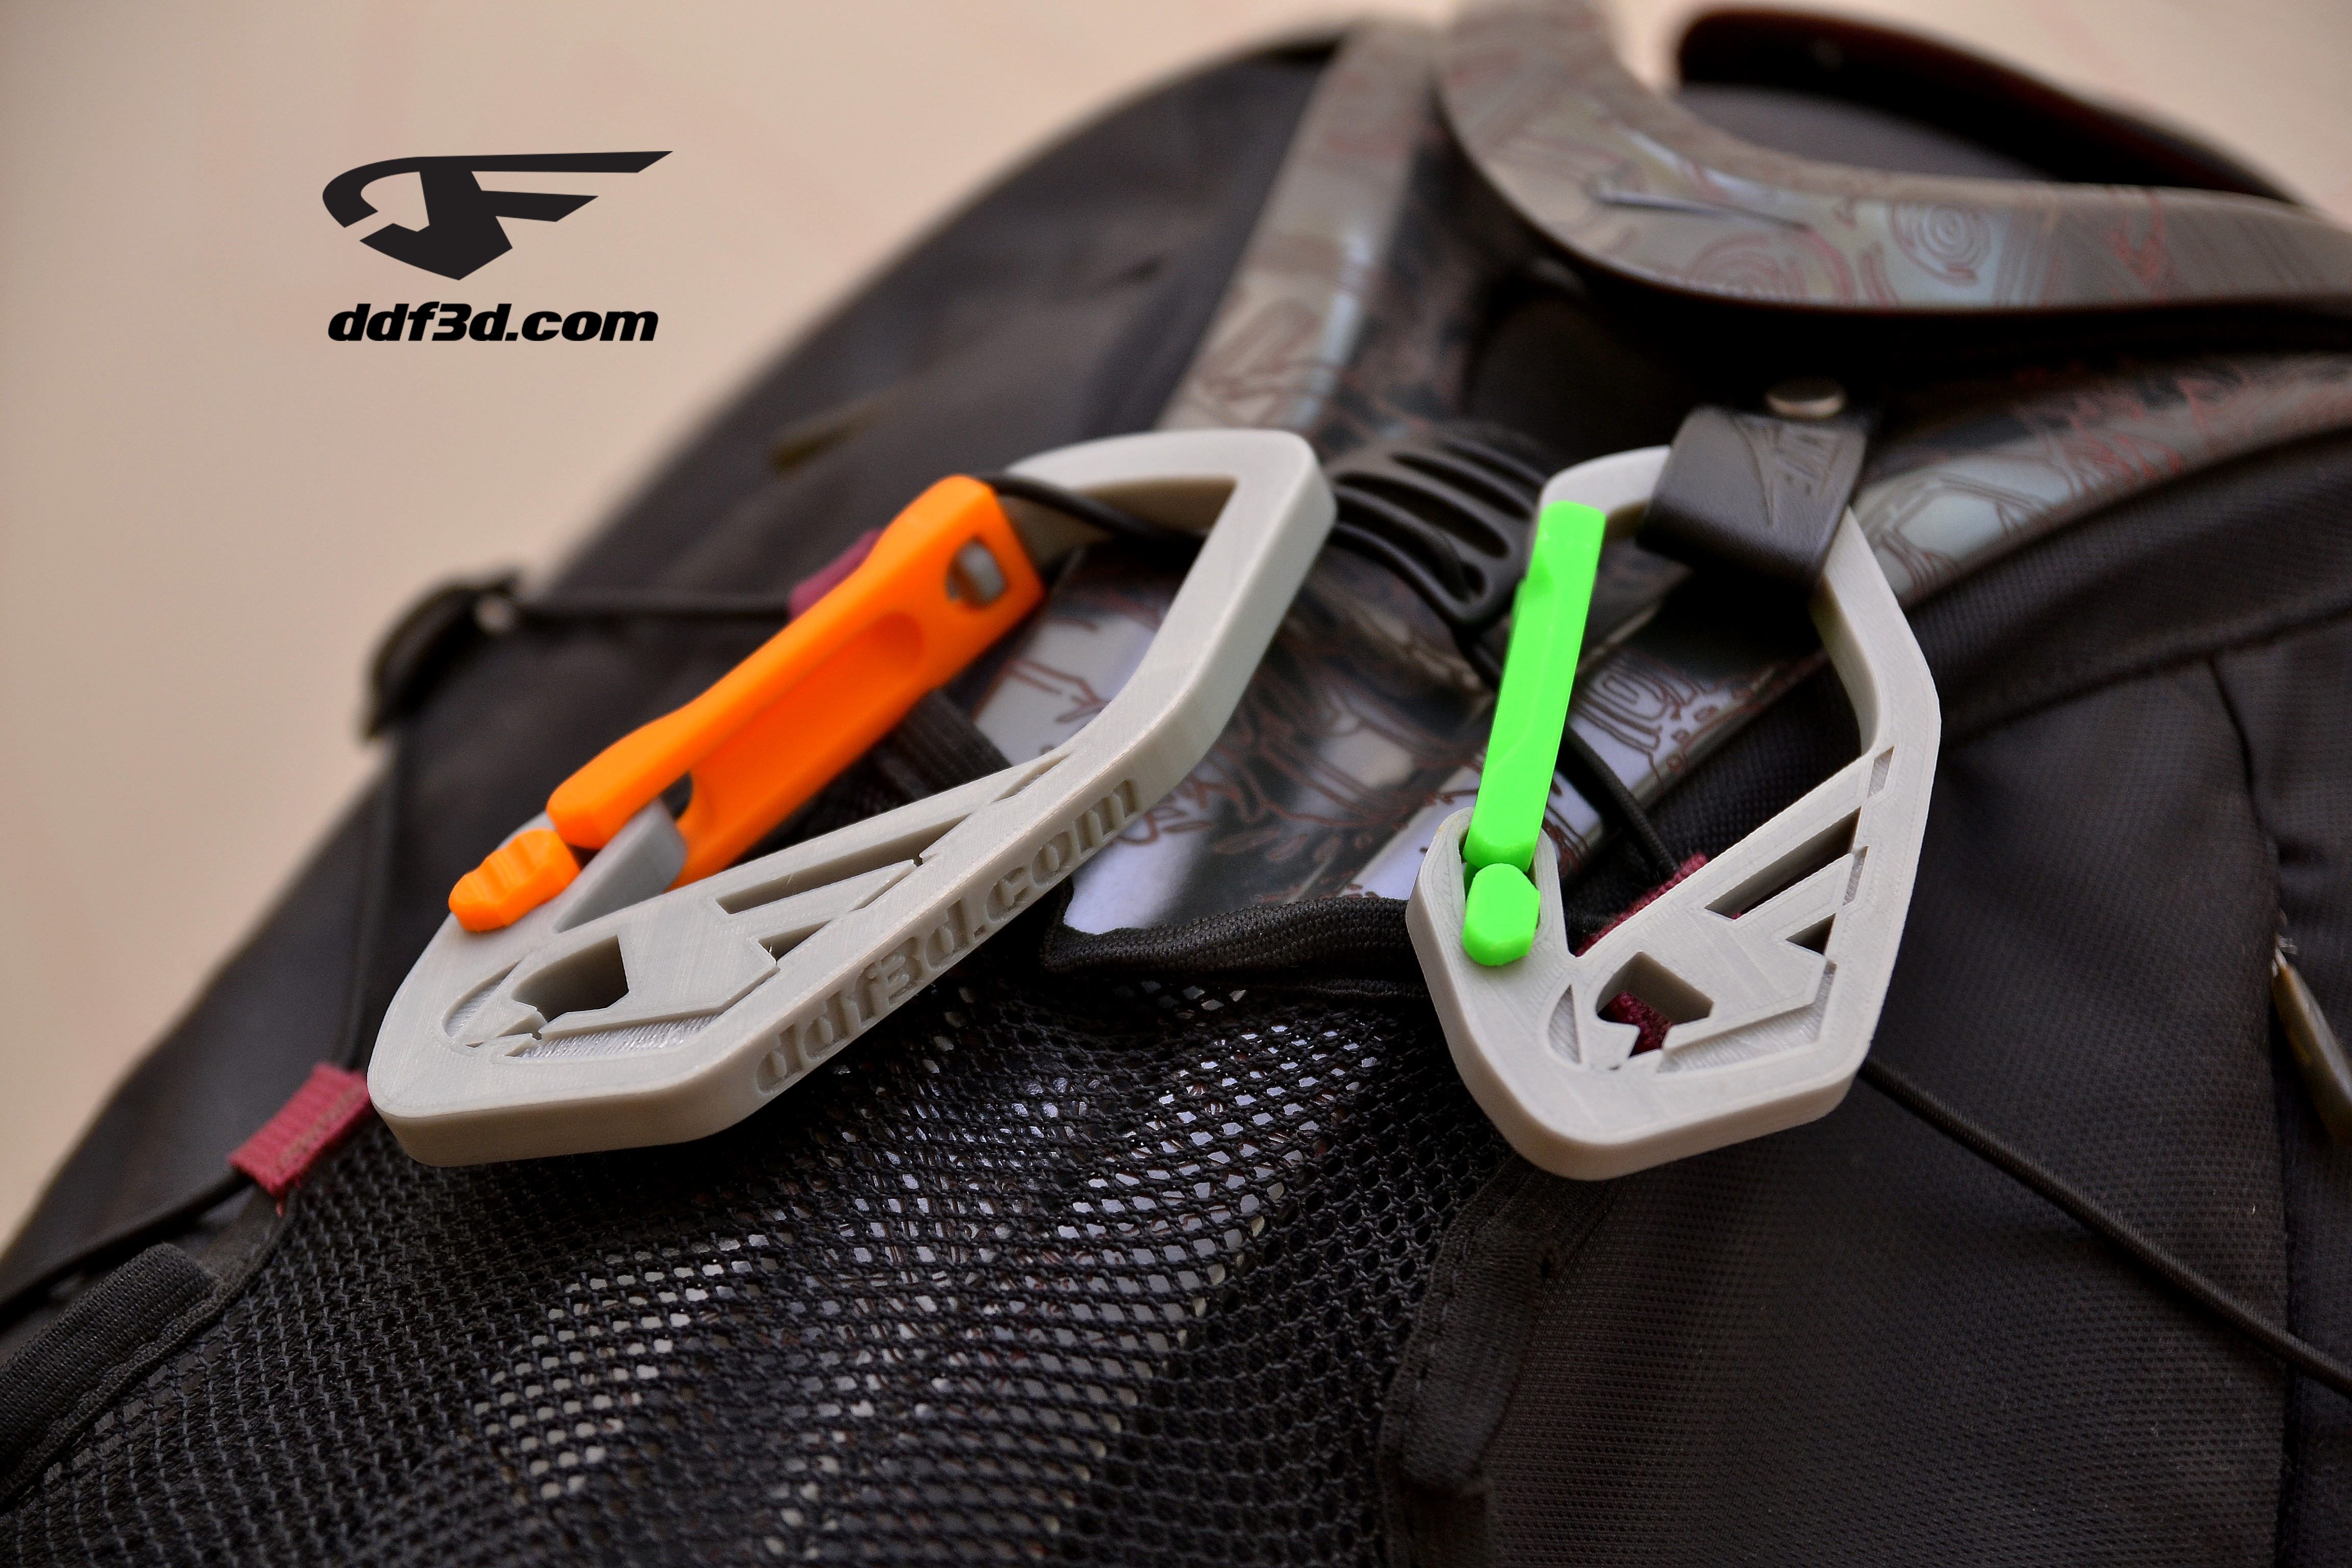 f4d823a0ec8c9  NEW  Strong Flex door Carabiner ddf3d Customized. by Charlie1982 Sep 13